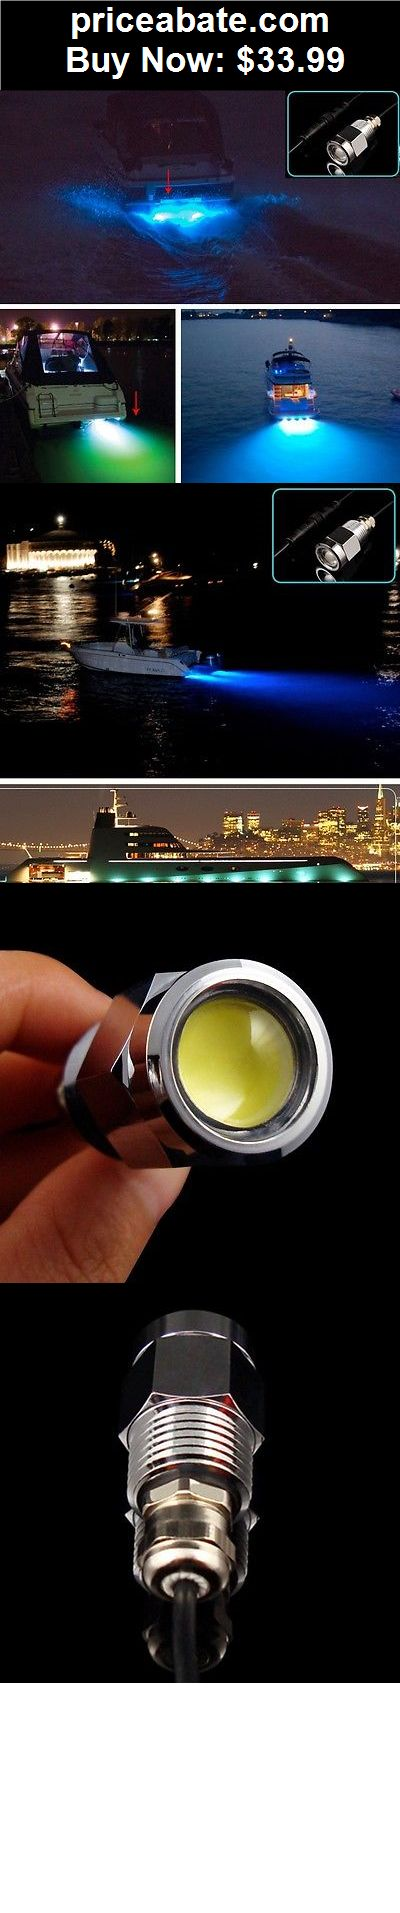 "Boat-Parts: Blue 6 led 1/2"" NPT Underwater Boat Drain Plug Light with connector for fishing - BUY IT NOW ONLY $33.99"